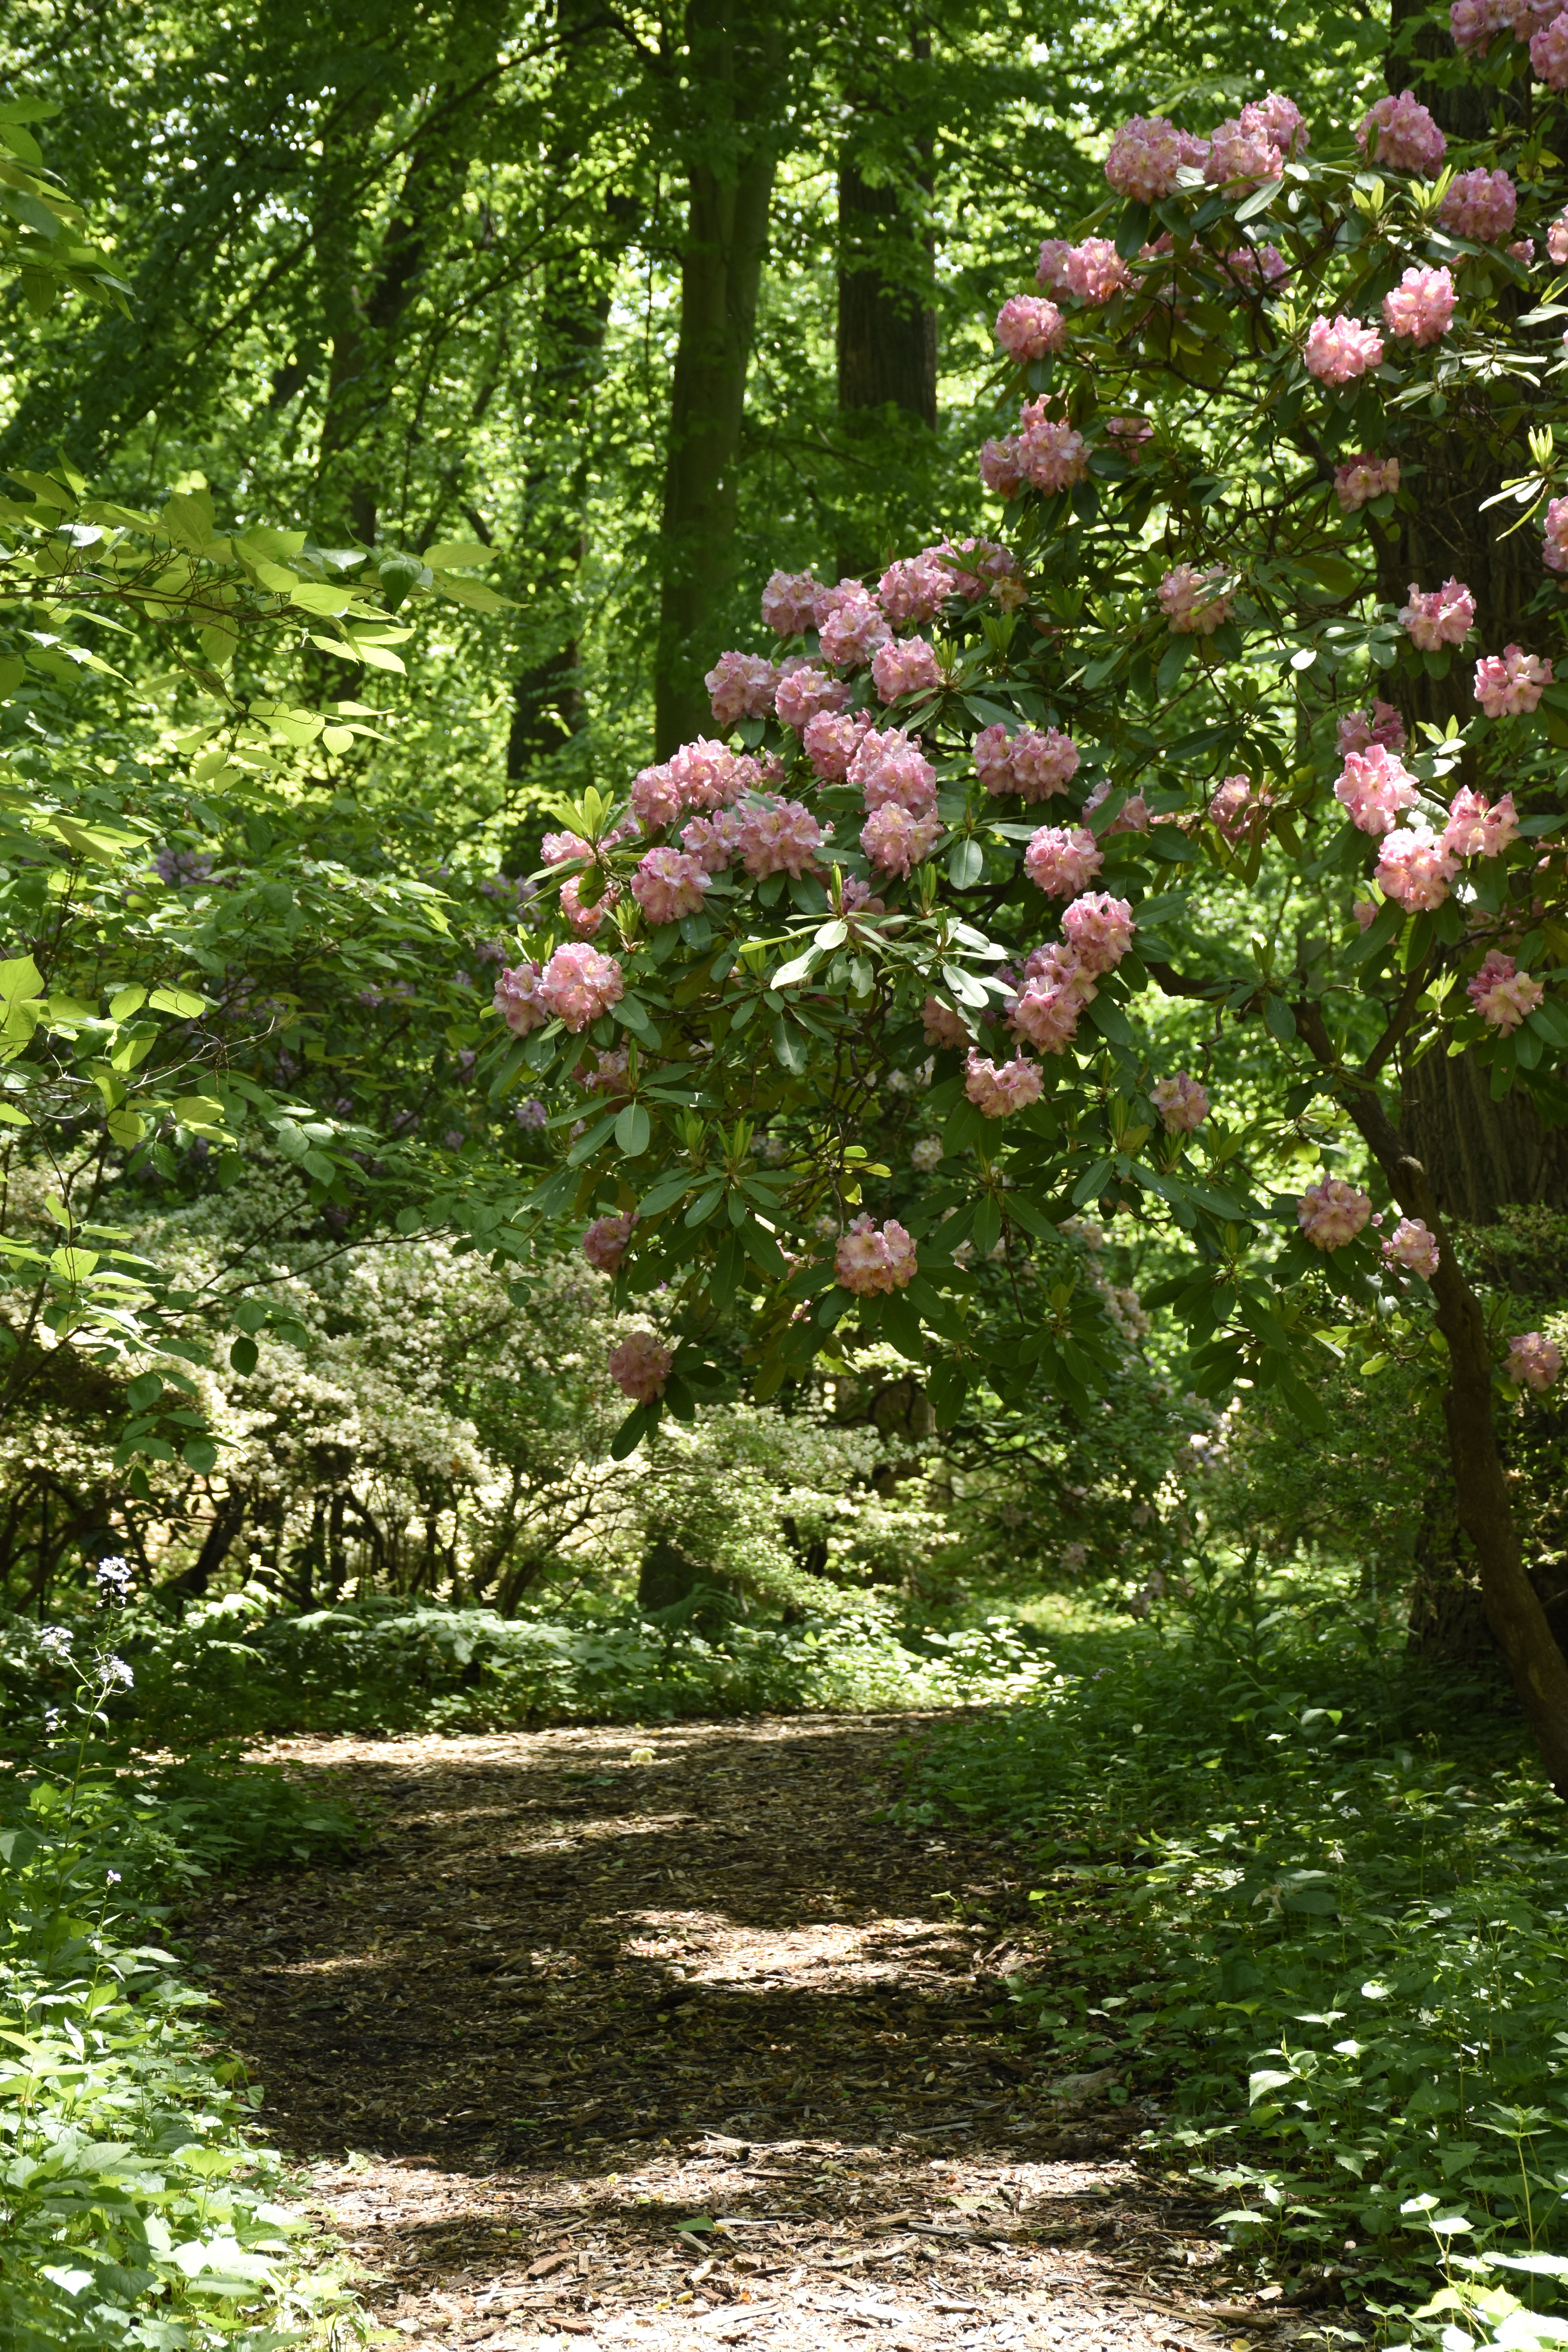 Rhododendron arches over path in Azalea Woods